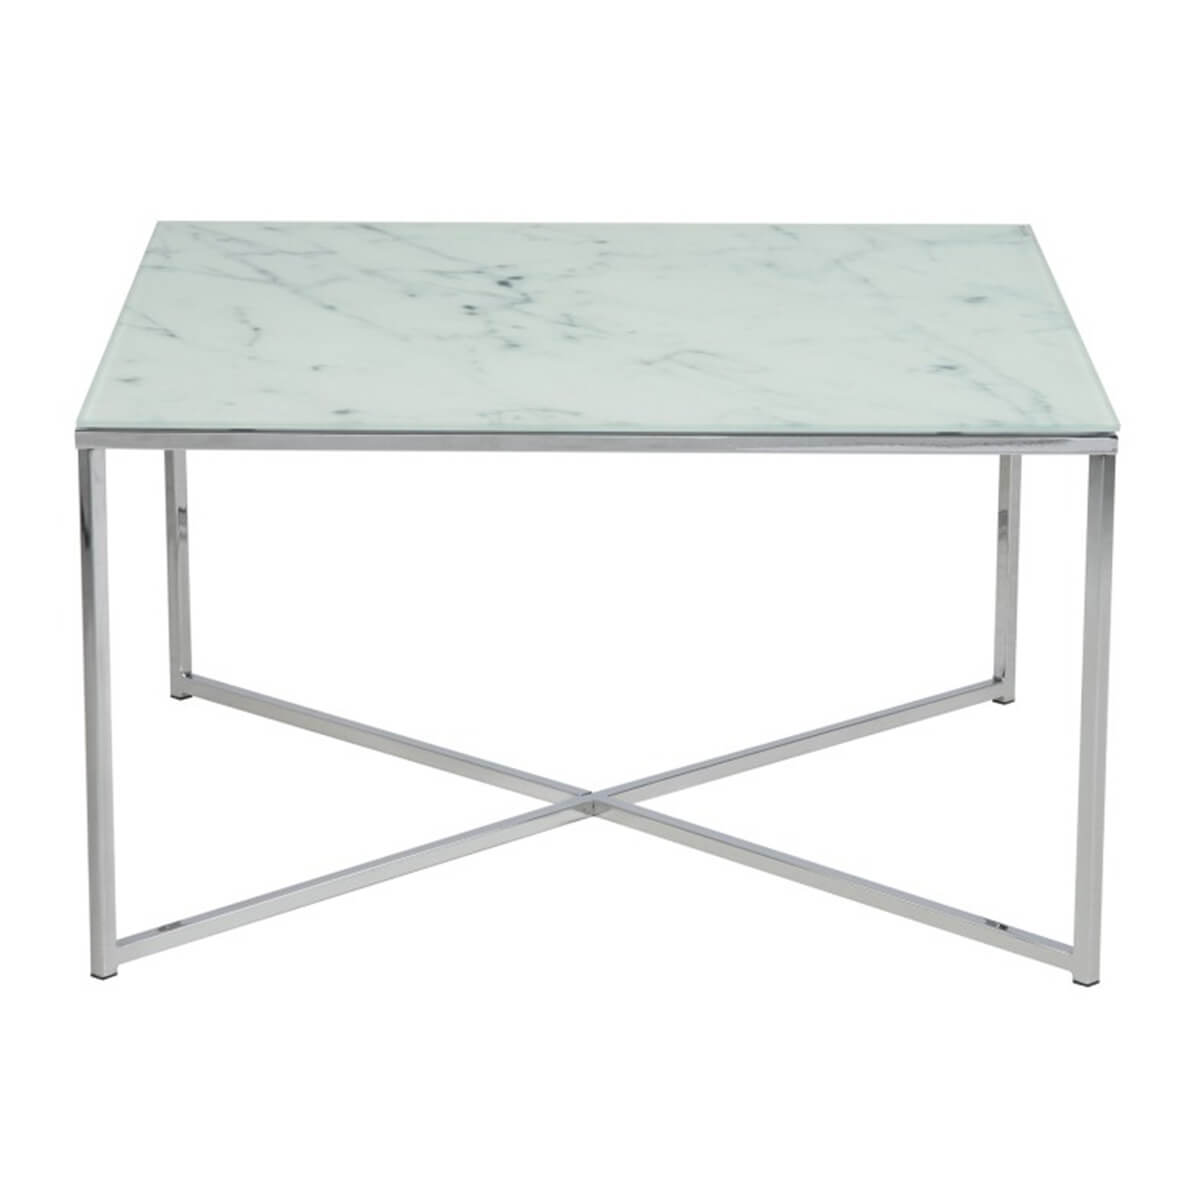 Beautiful Alisma White Marble Style Glass Coffee Table